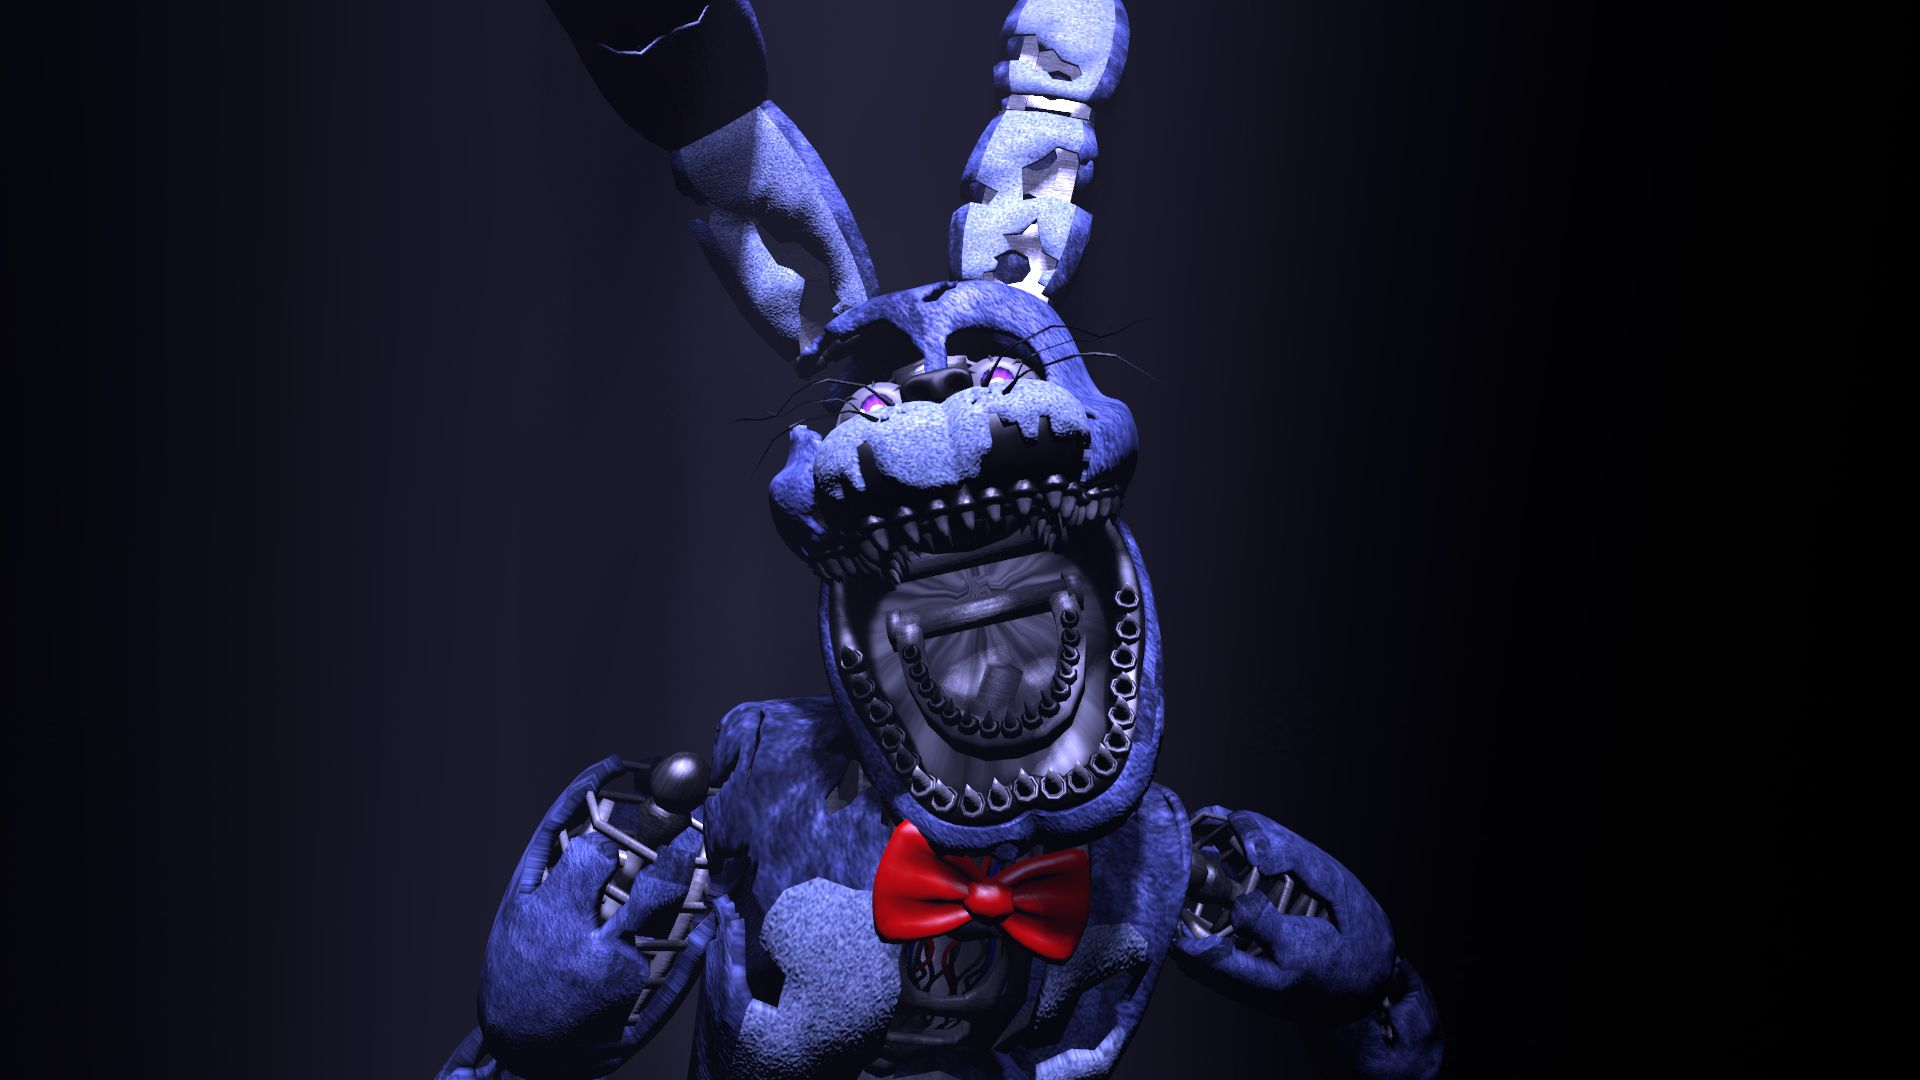 FNAF Bonnie wallpaper photo hd